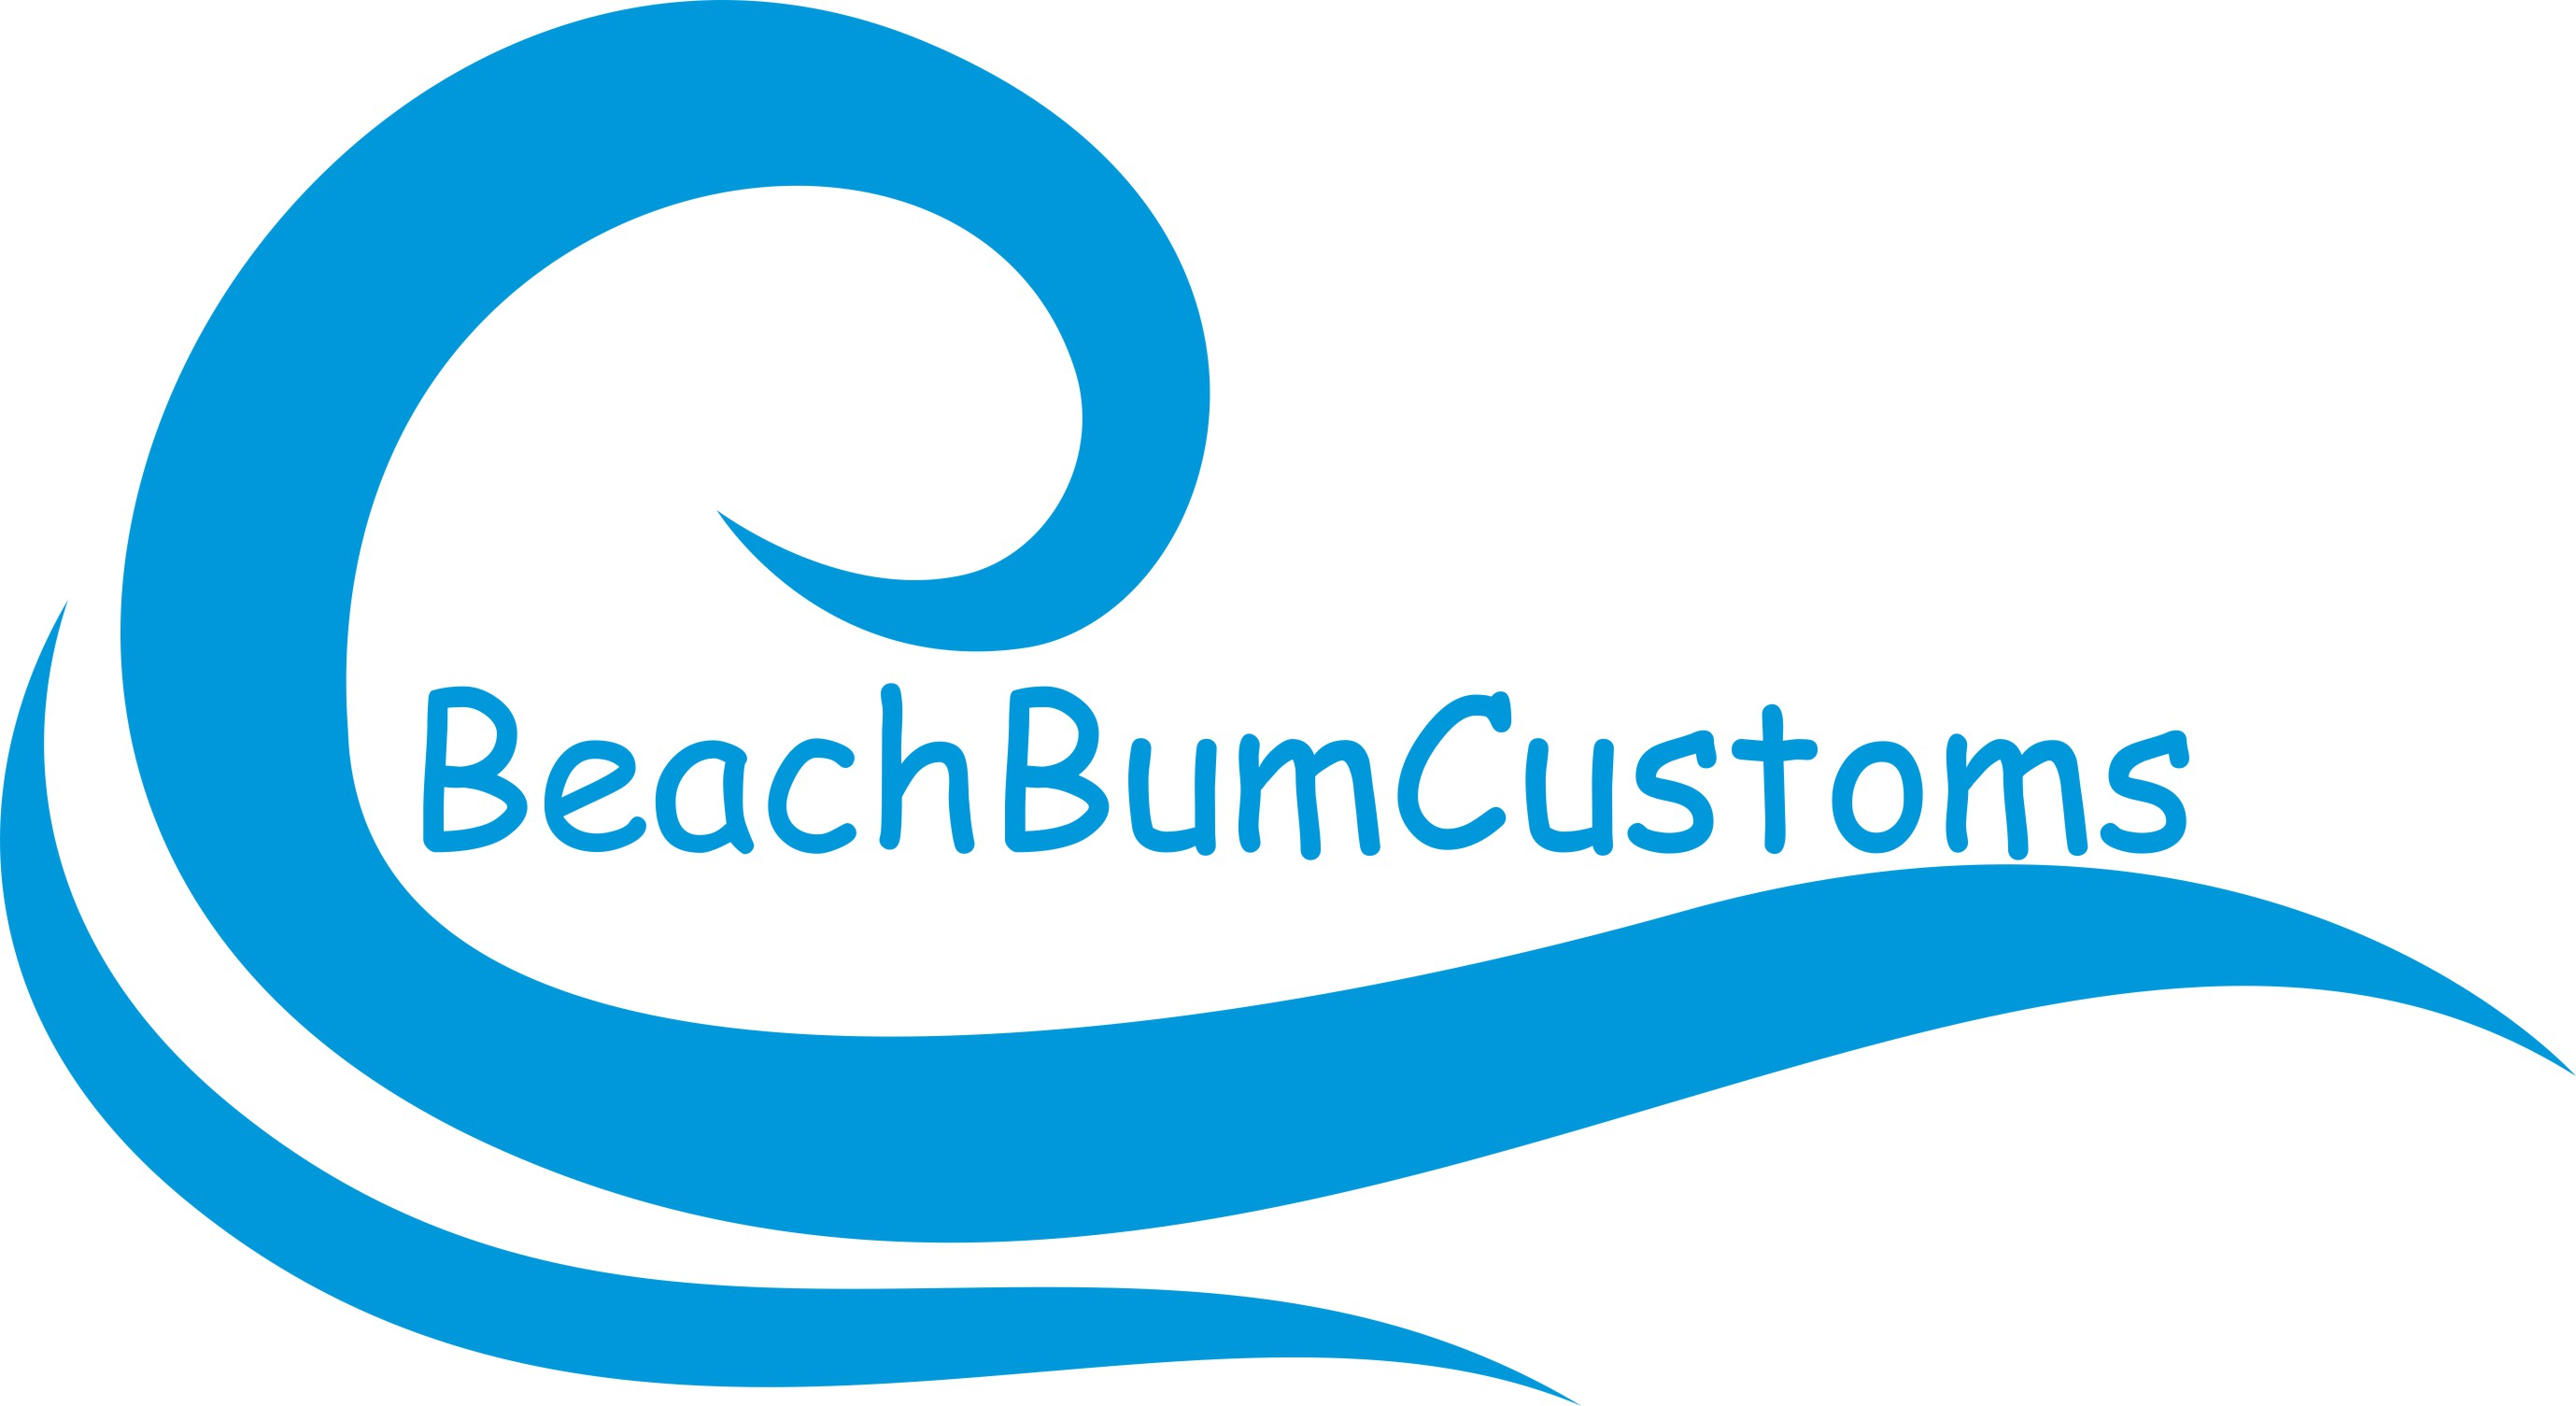 Beachbum Customs